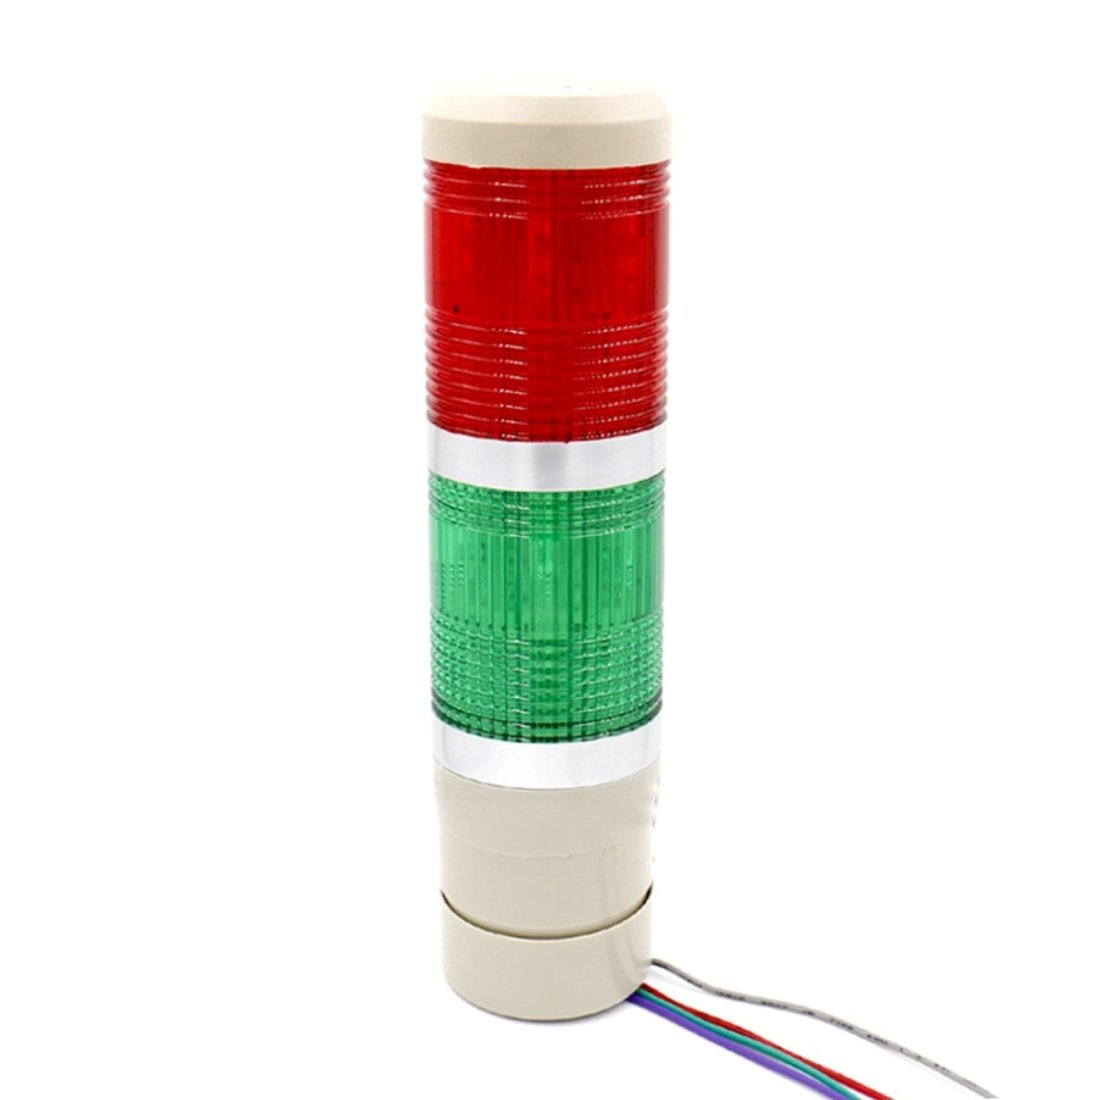 Baomain Industrial Signal Light Column LED Alarm Round Tower Light Indicator Continuous light Warning light Red Green AC 110V